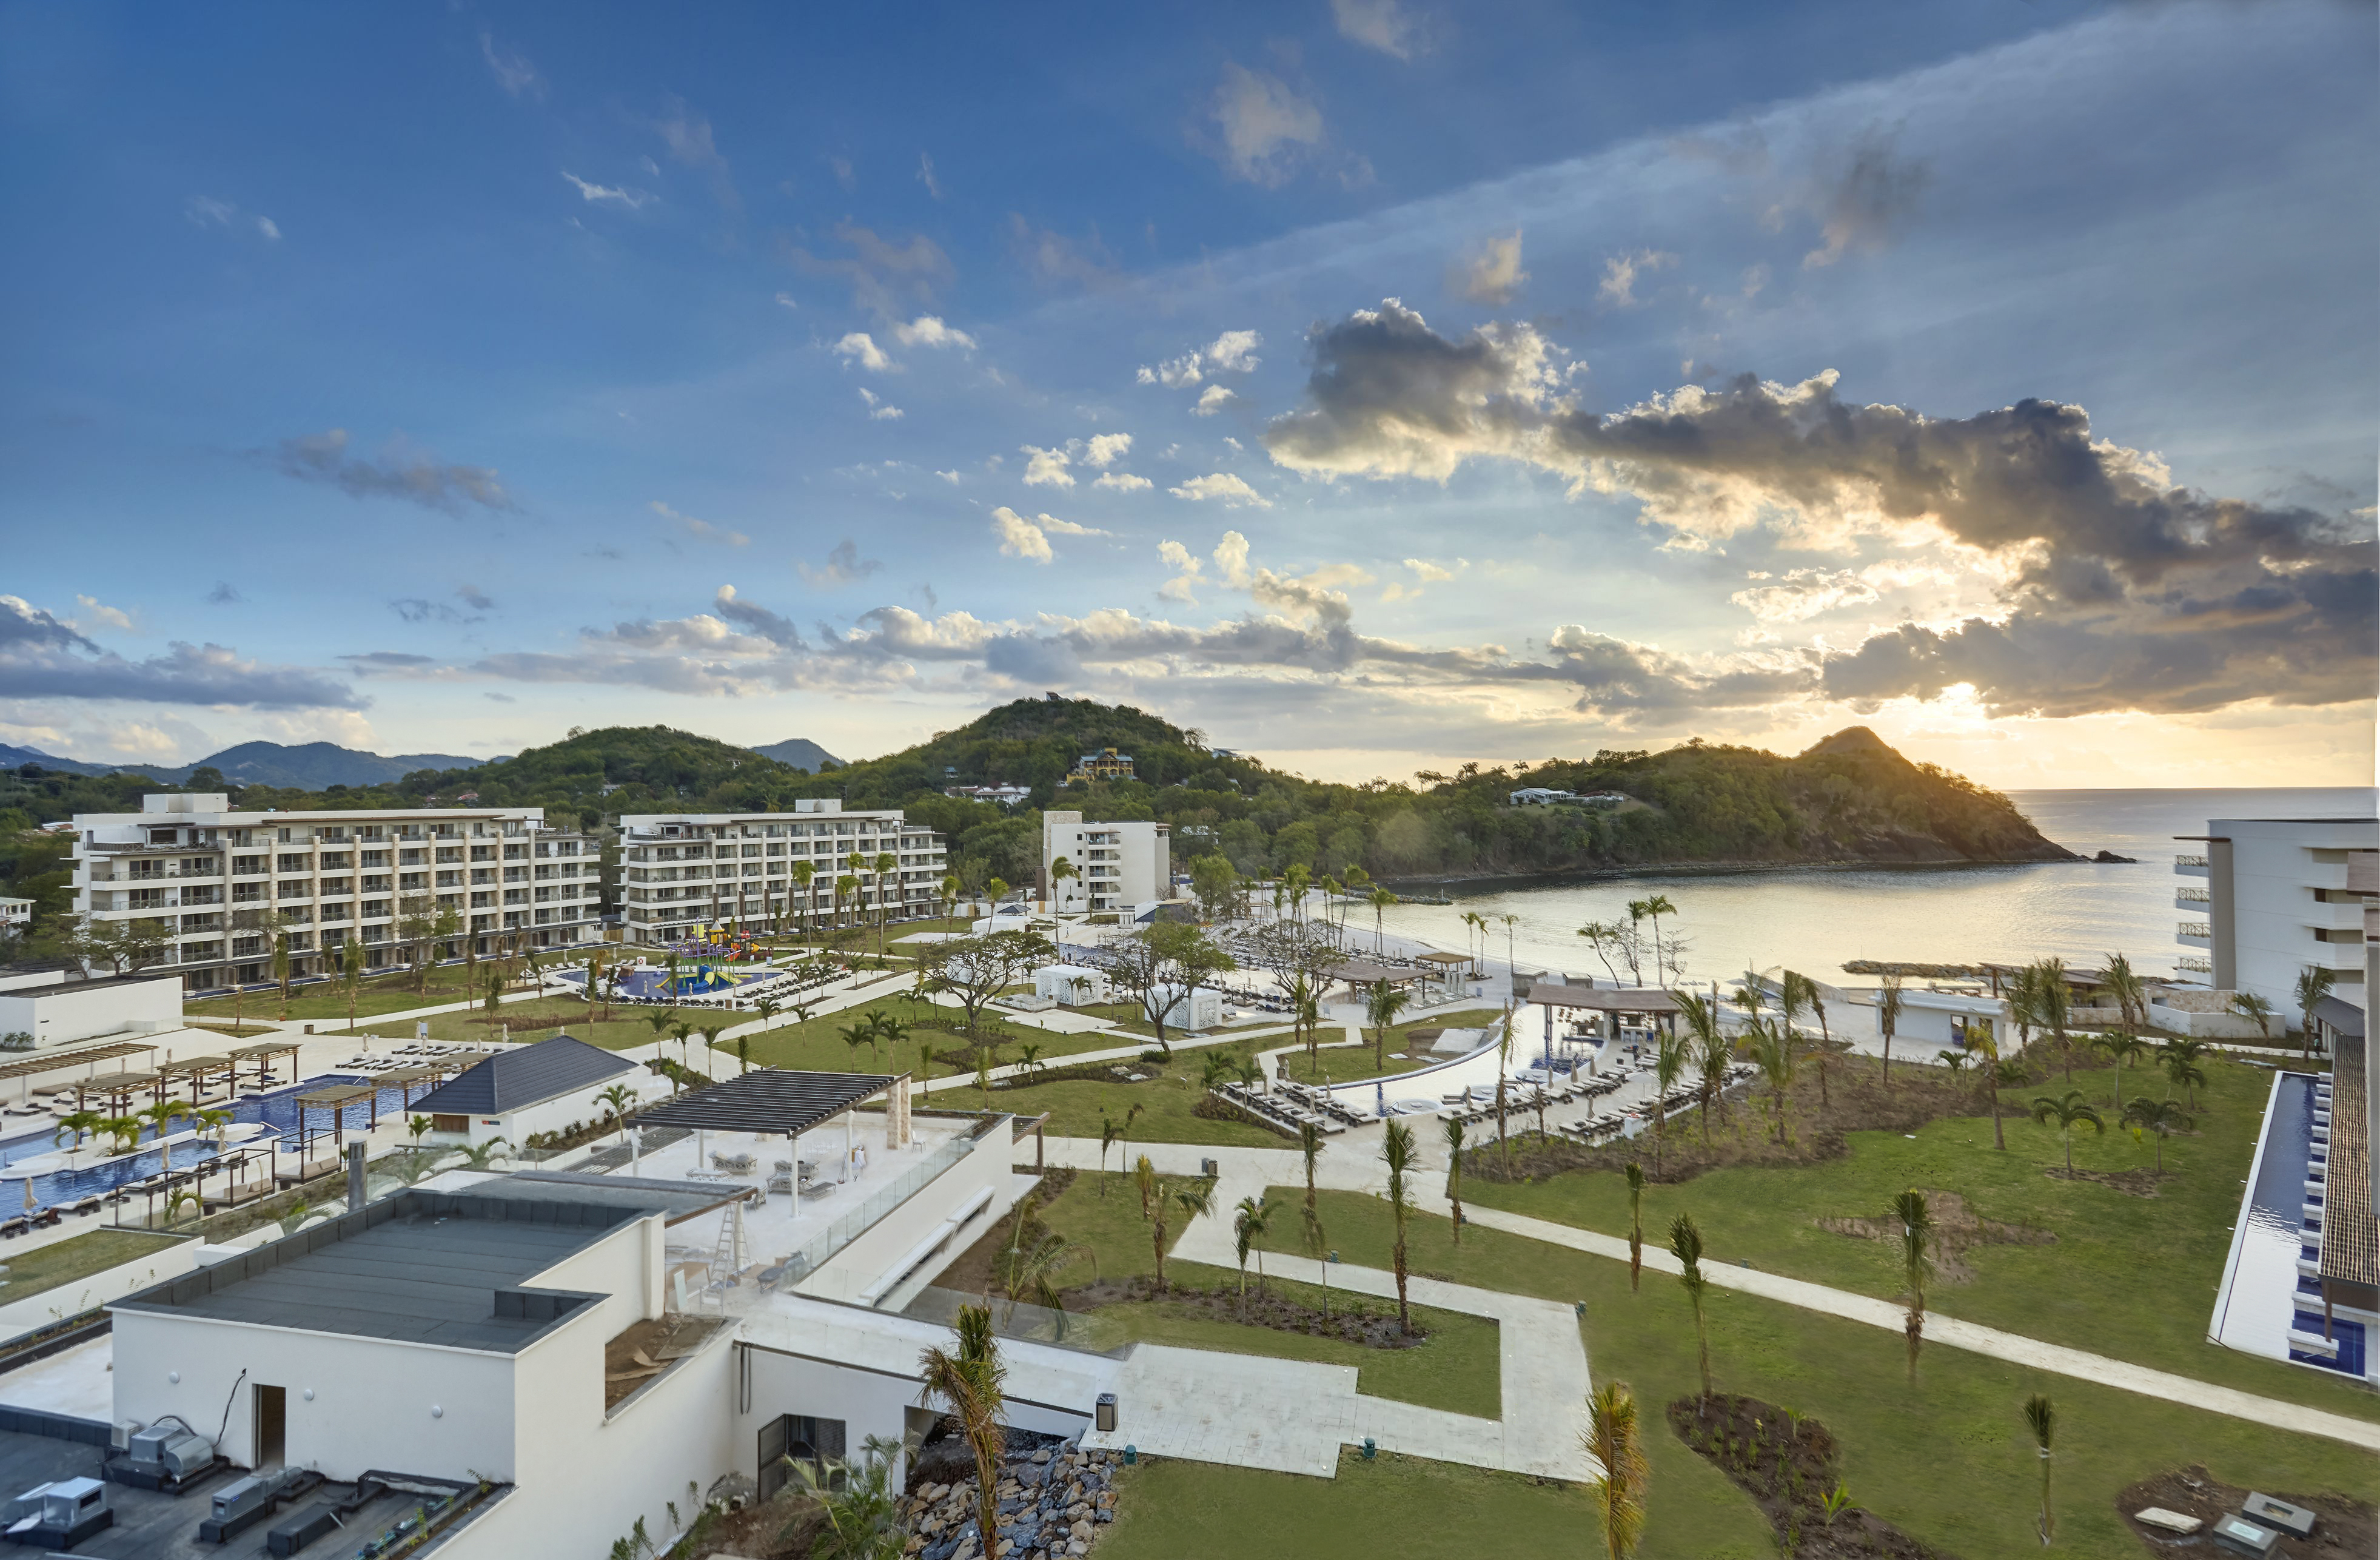 A vibrant brand with options for everyone, the Royalton has three new resorts totally worth your hard-earned vacation days.